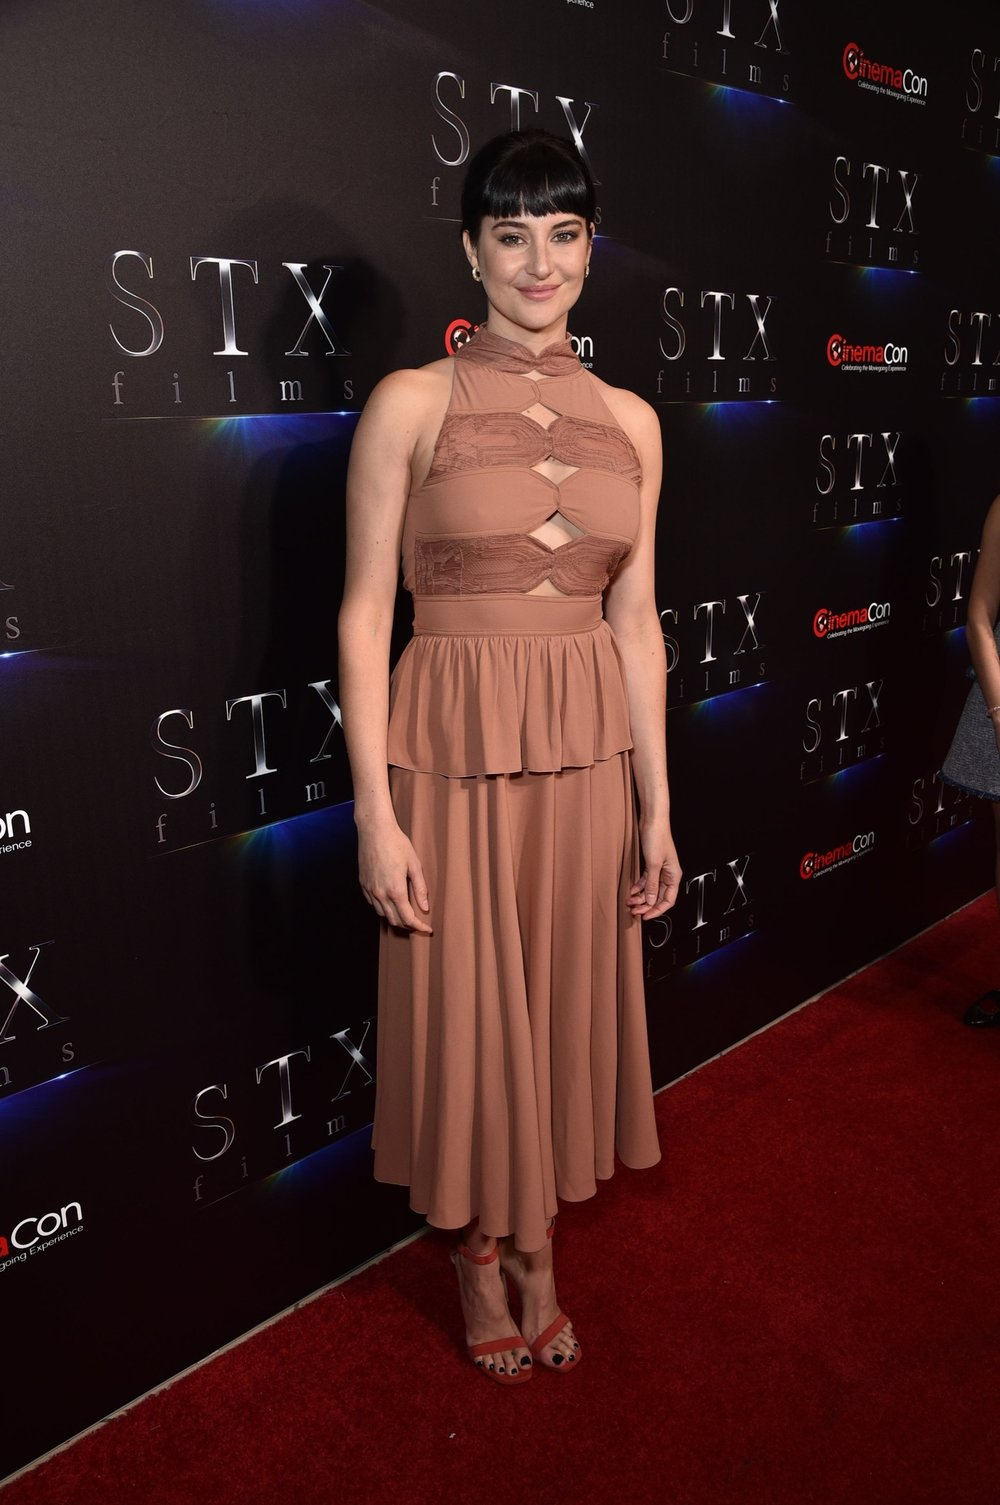 CinemaCon, 2018 - Shailene Woodley